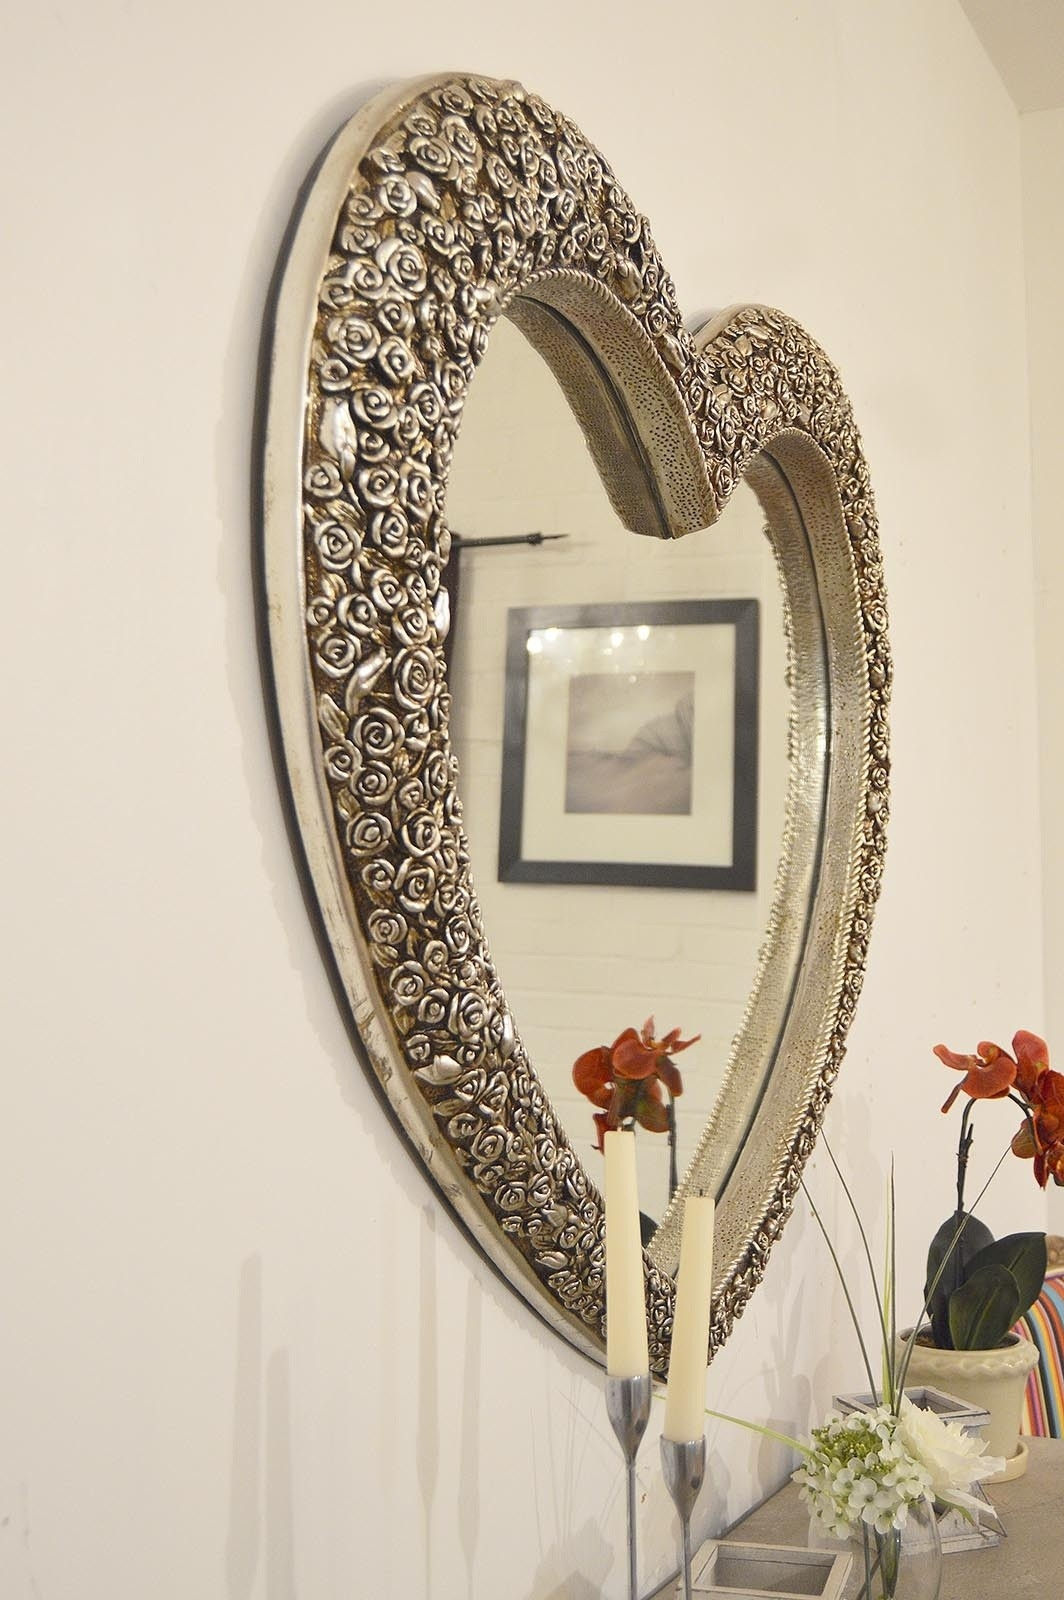 V Large Antique Silver Heart Shaped Wall Mirror 3ft1x3ft7 In Large Heart Mirror (Image 14 of 15)